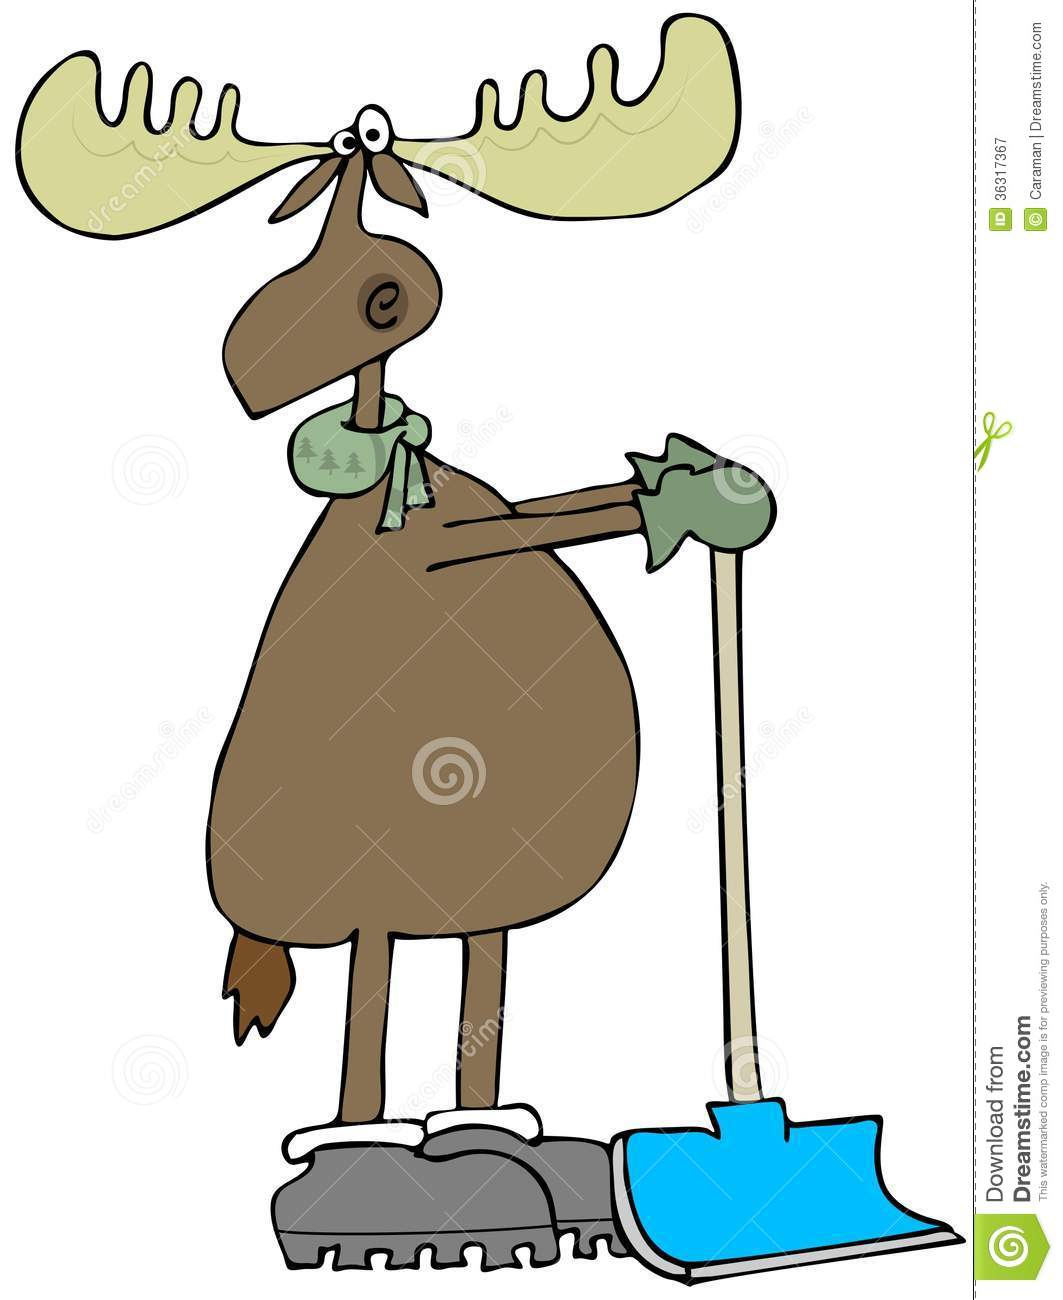 Moose Leaning On A Snow Shovel Royalty Free Stock